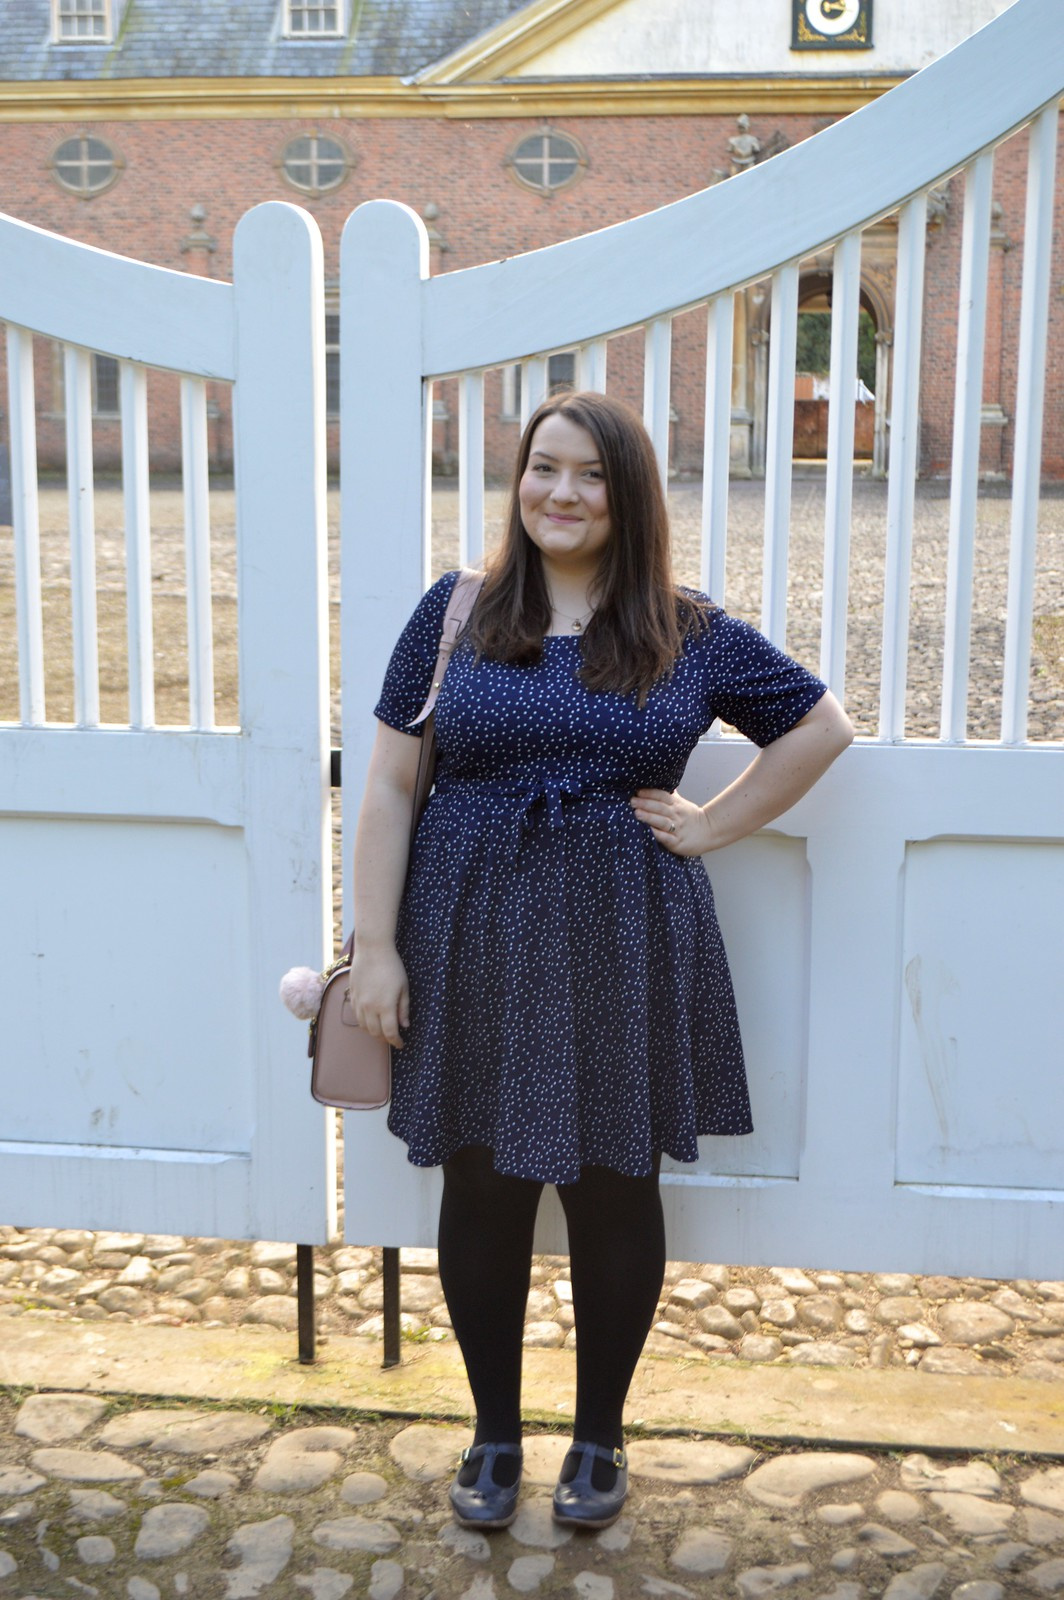 this is a photo of a navy blue and white polka dot dress